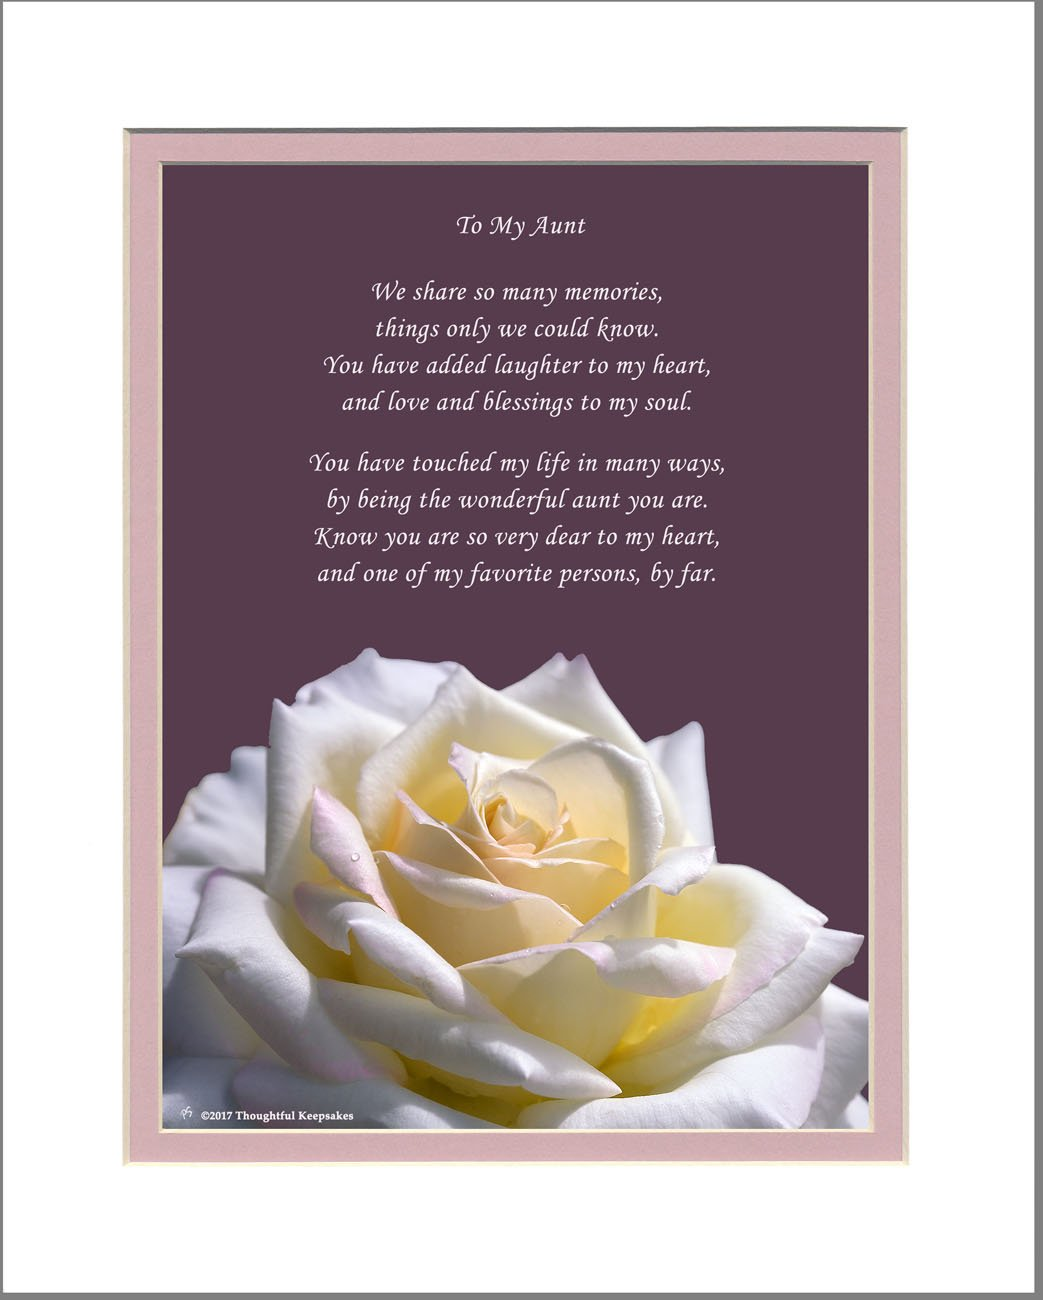 Aunt Gift with You Have Touched My Life in Many Ways Rose Photo 8x10 Matted By Being the Wonderful Aunt You Are Poem Great Birthday or for Aunt.